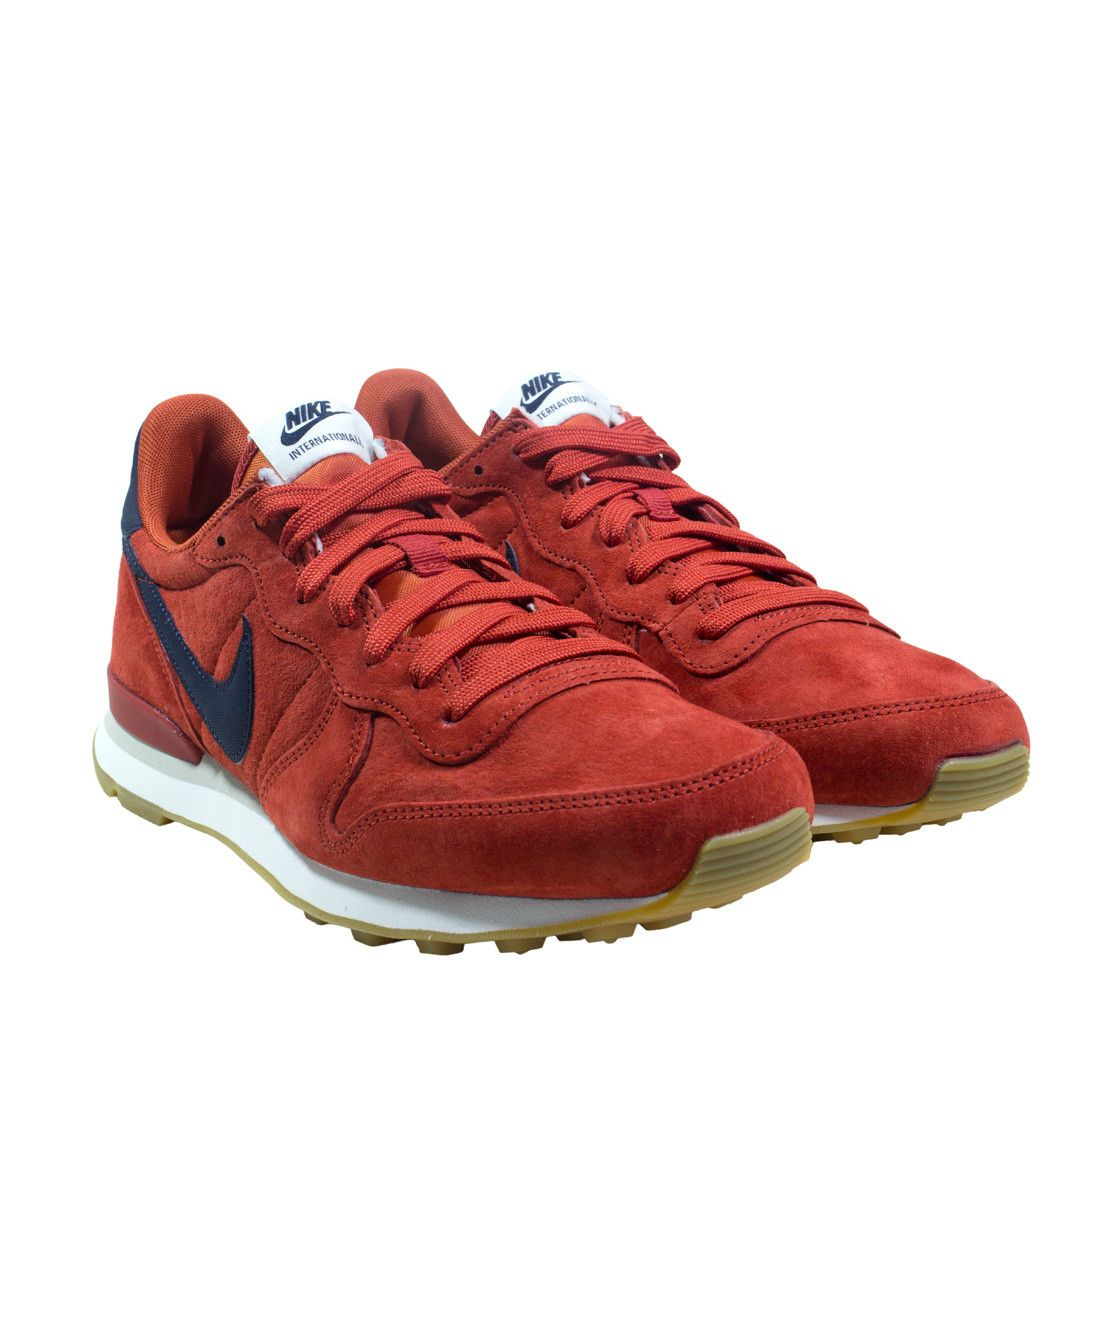 sports shoes 6f808 30987 Nike Internationalist Leather (Cinnabar Dark Obsidian-Bright Crimson) ...